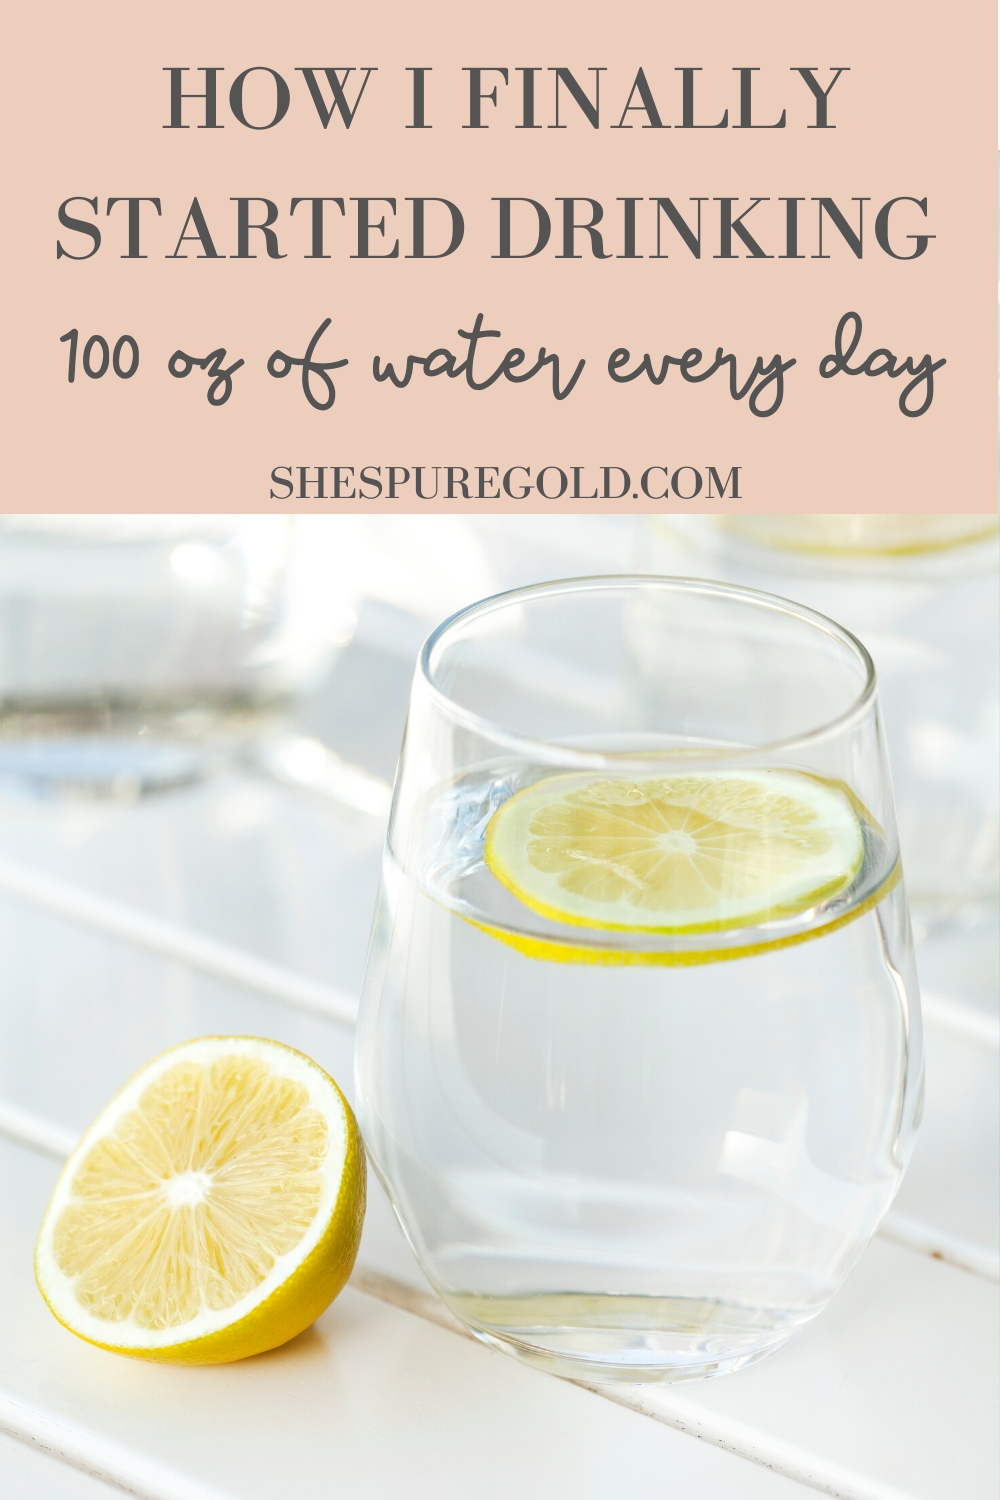 How to drink 100 oz of water every day